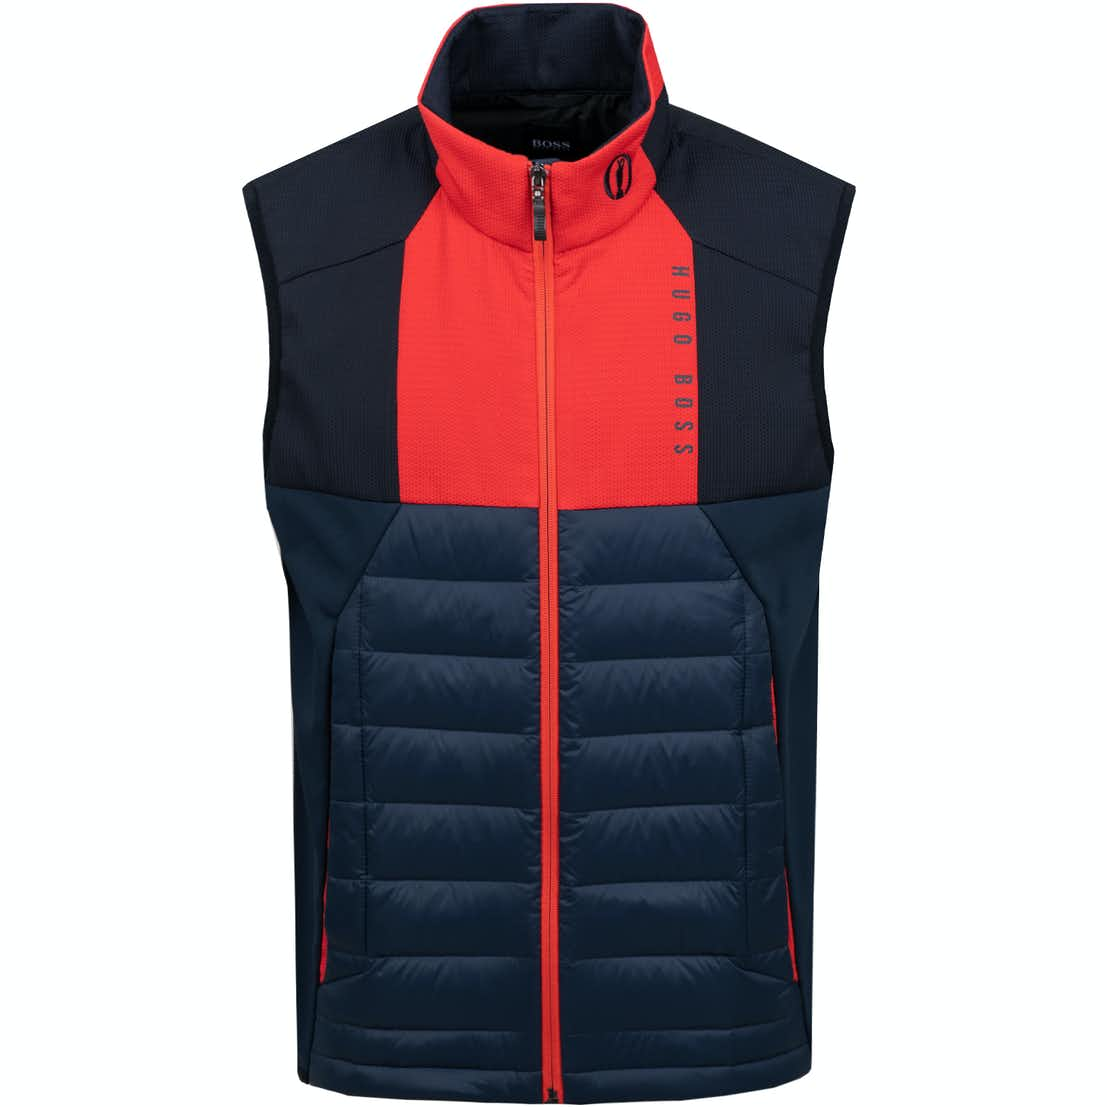 The Open BOSS Full-Zip Gilet - Blue and Red